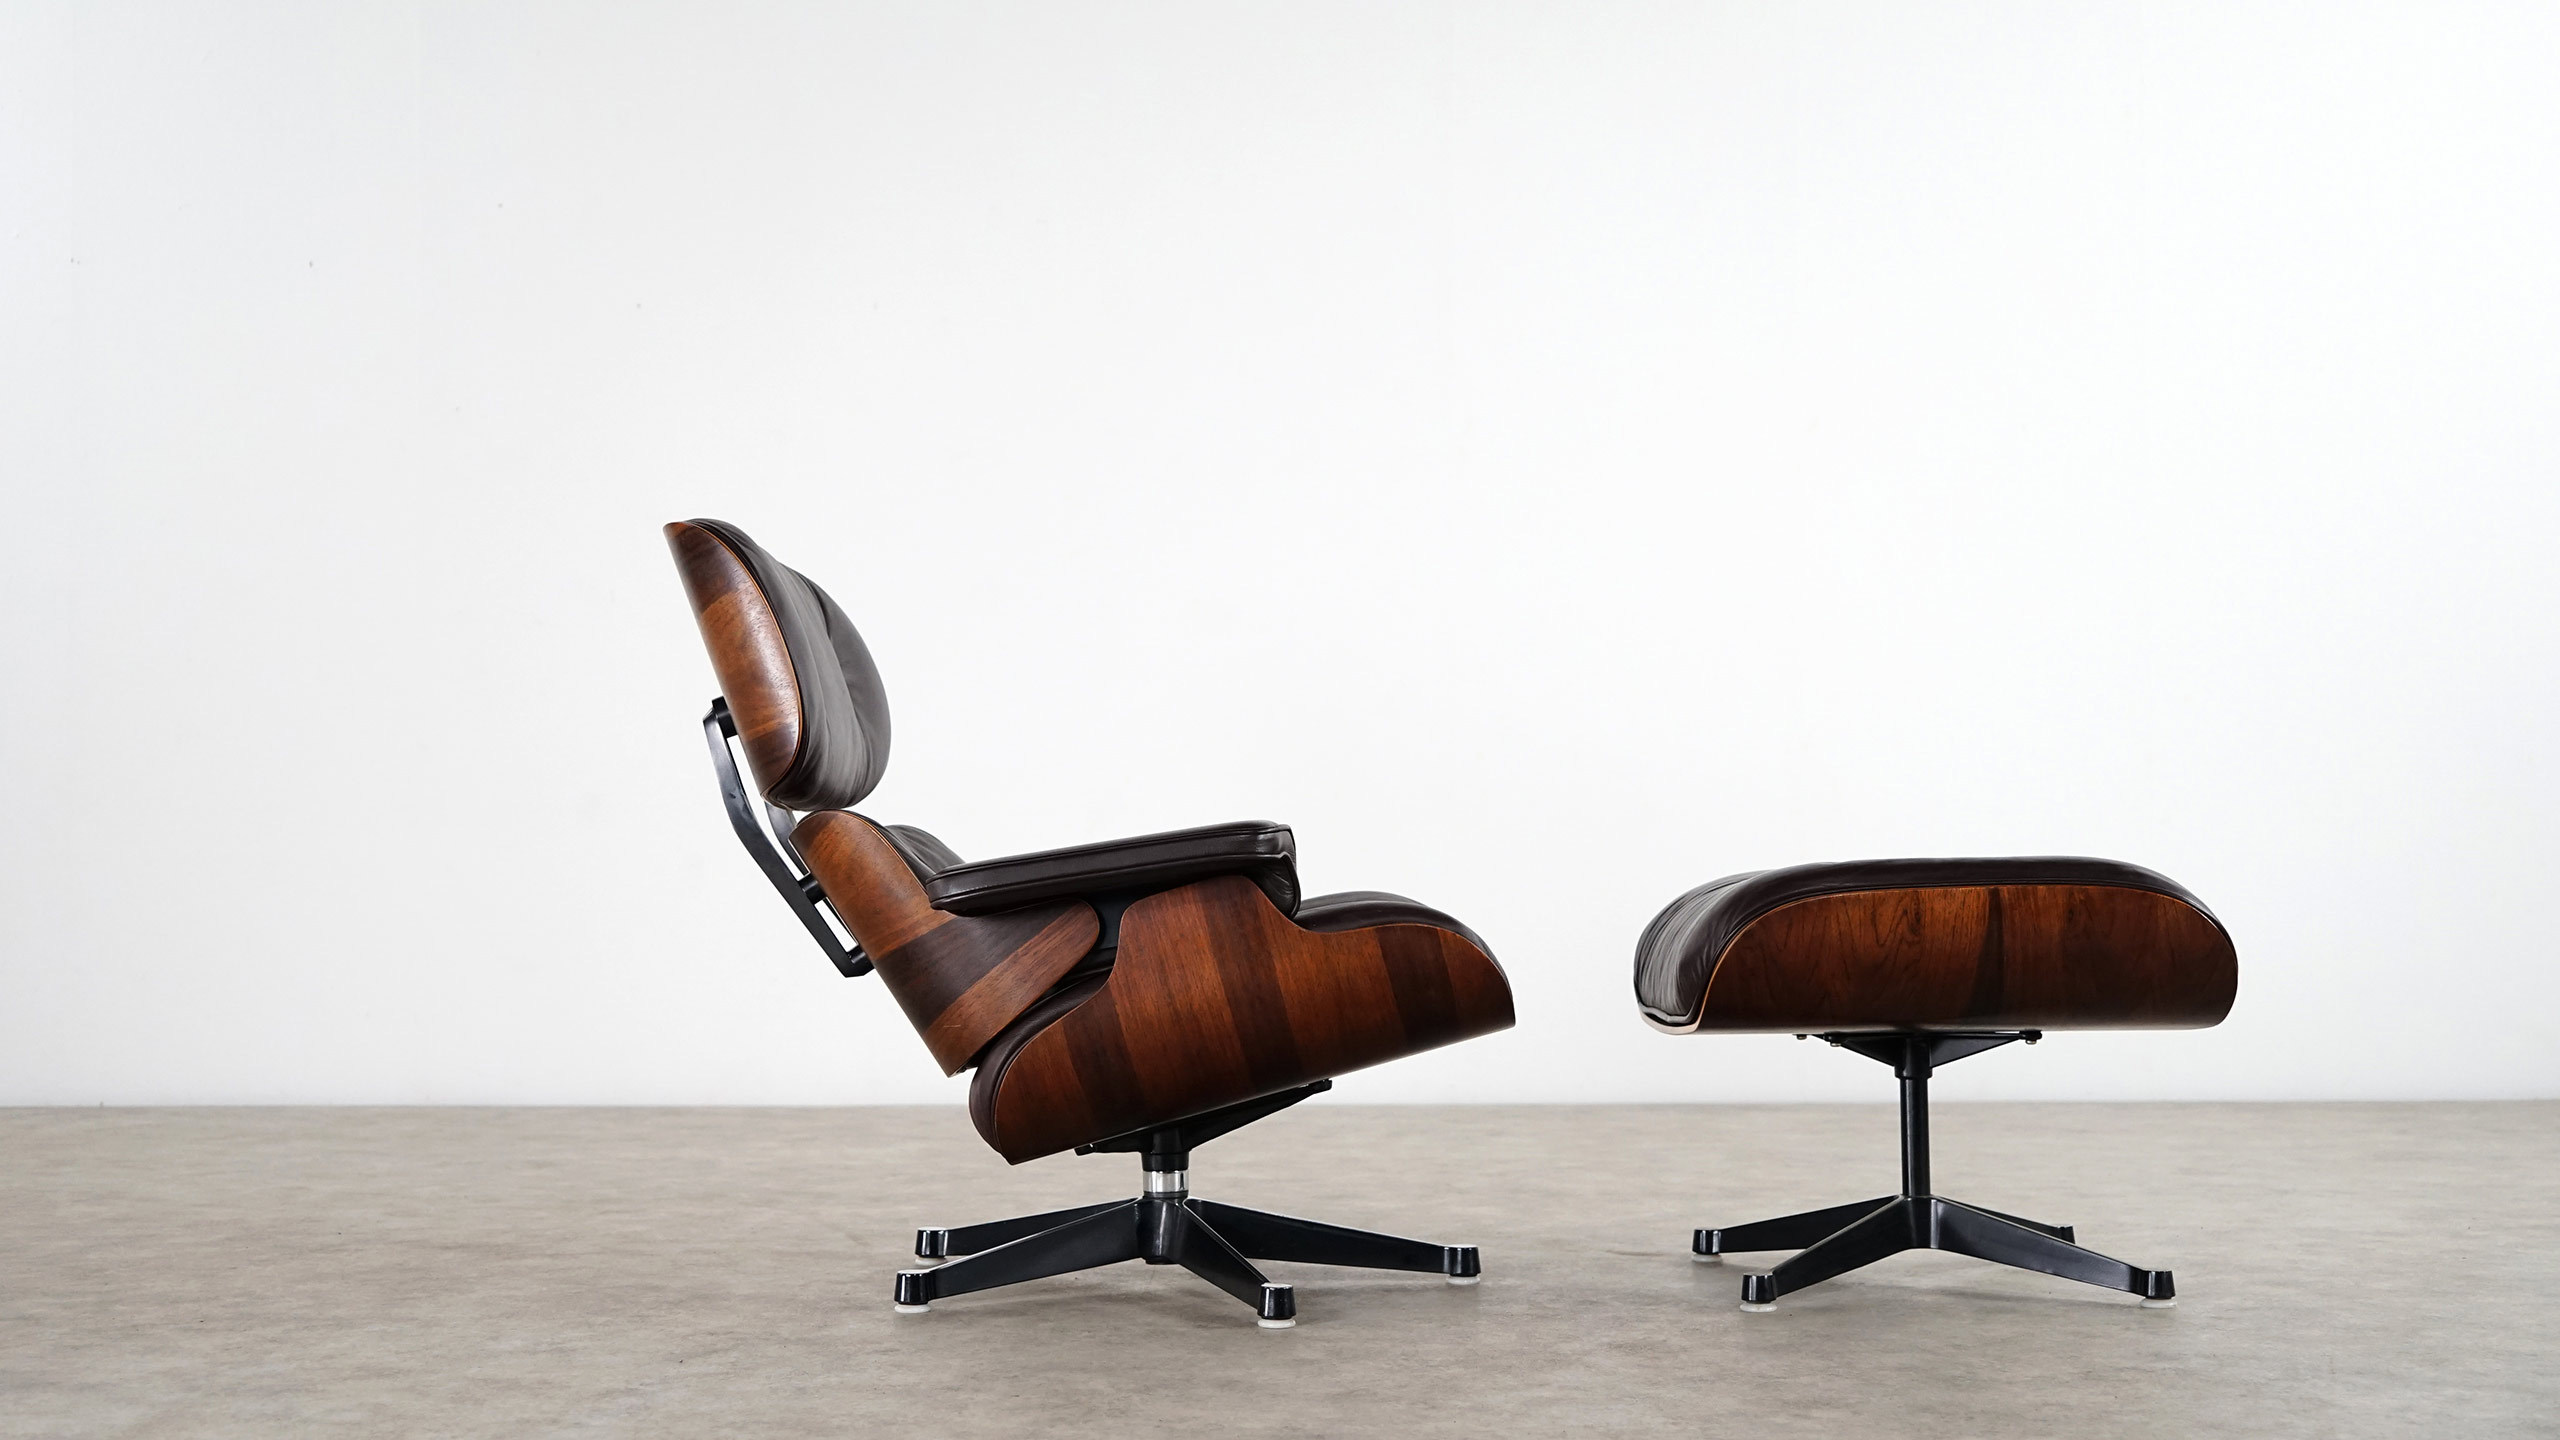 Vitra Chalres Eames : Charles eames lounge chair herman miller vitra